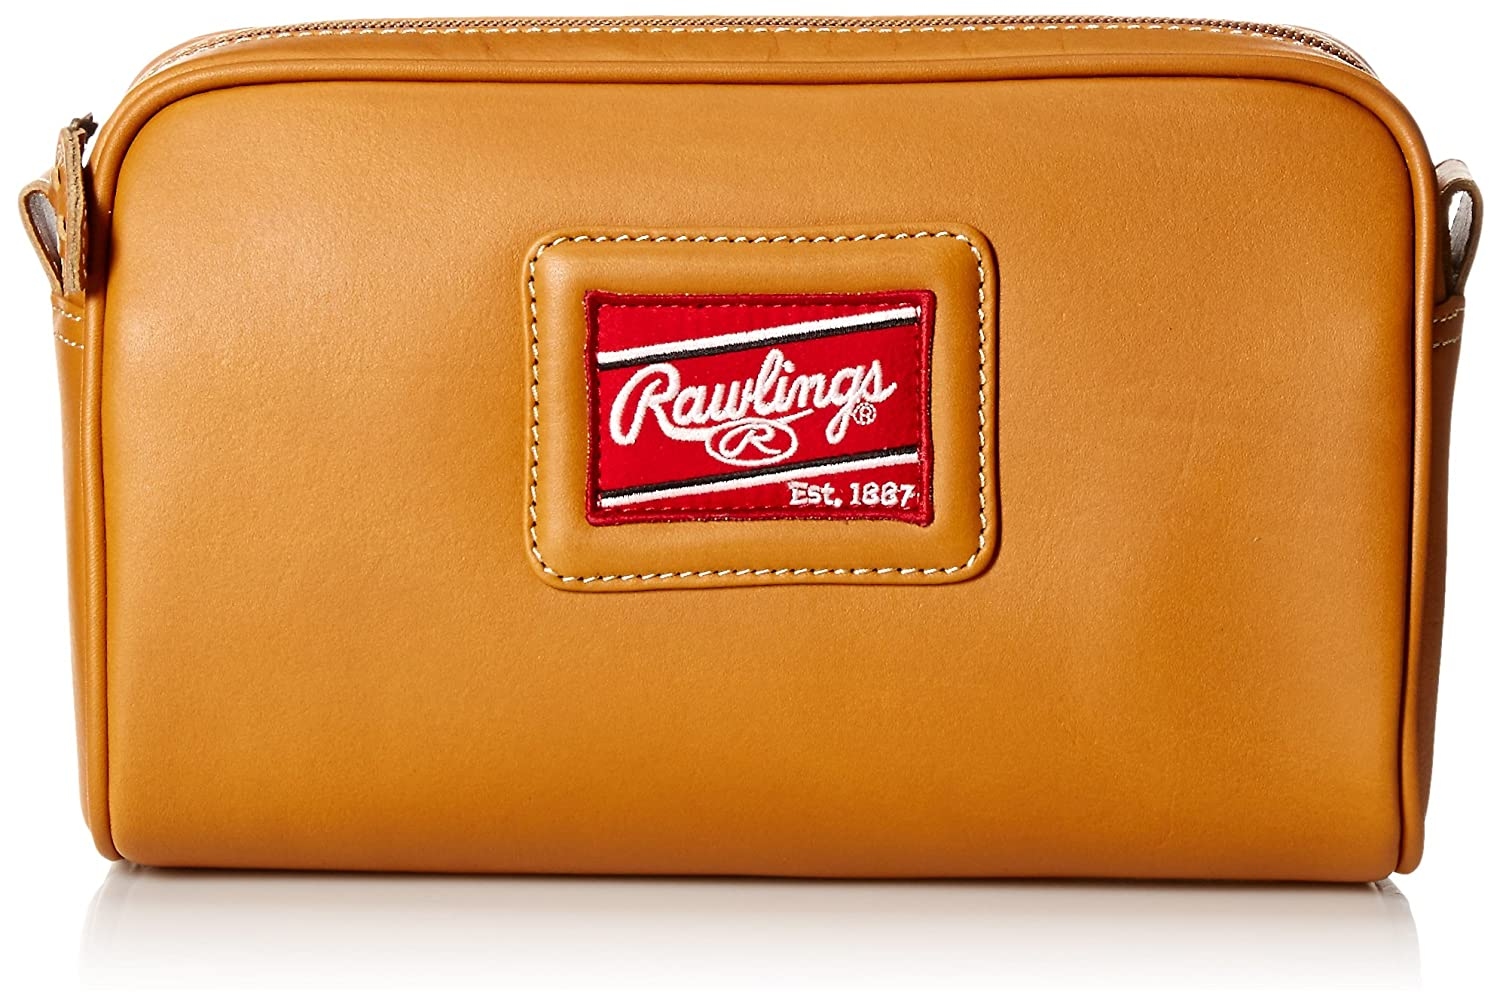 Rawlings Heart of the Hide Travel Kit Tan